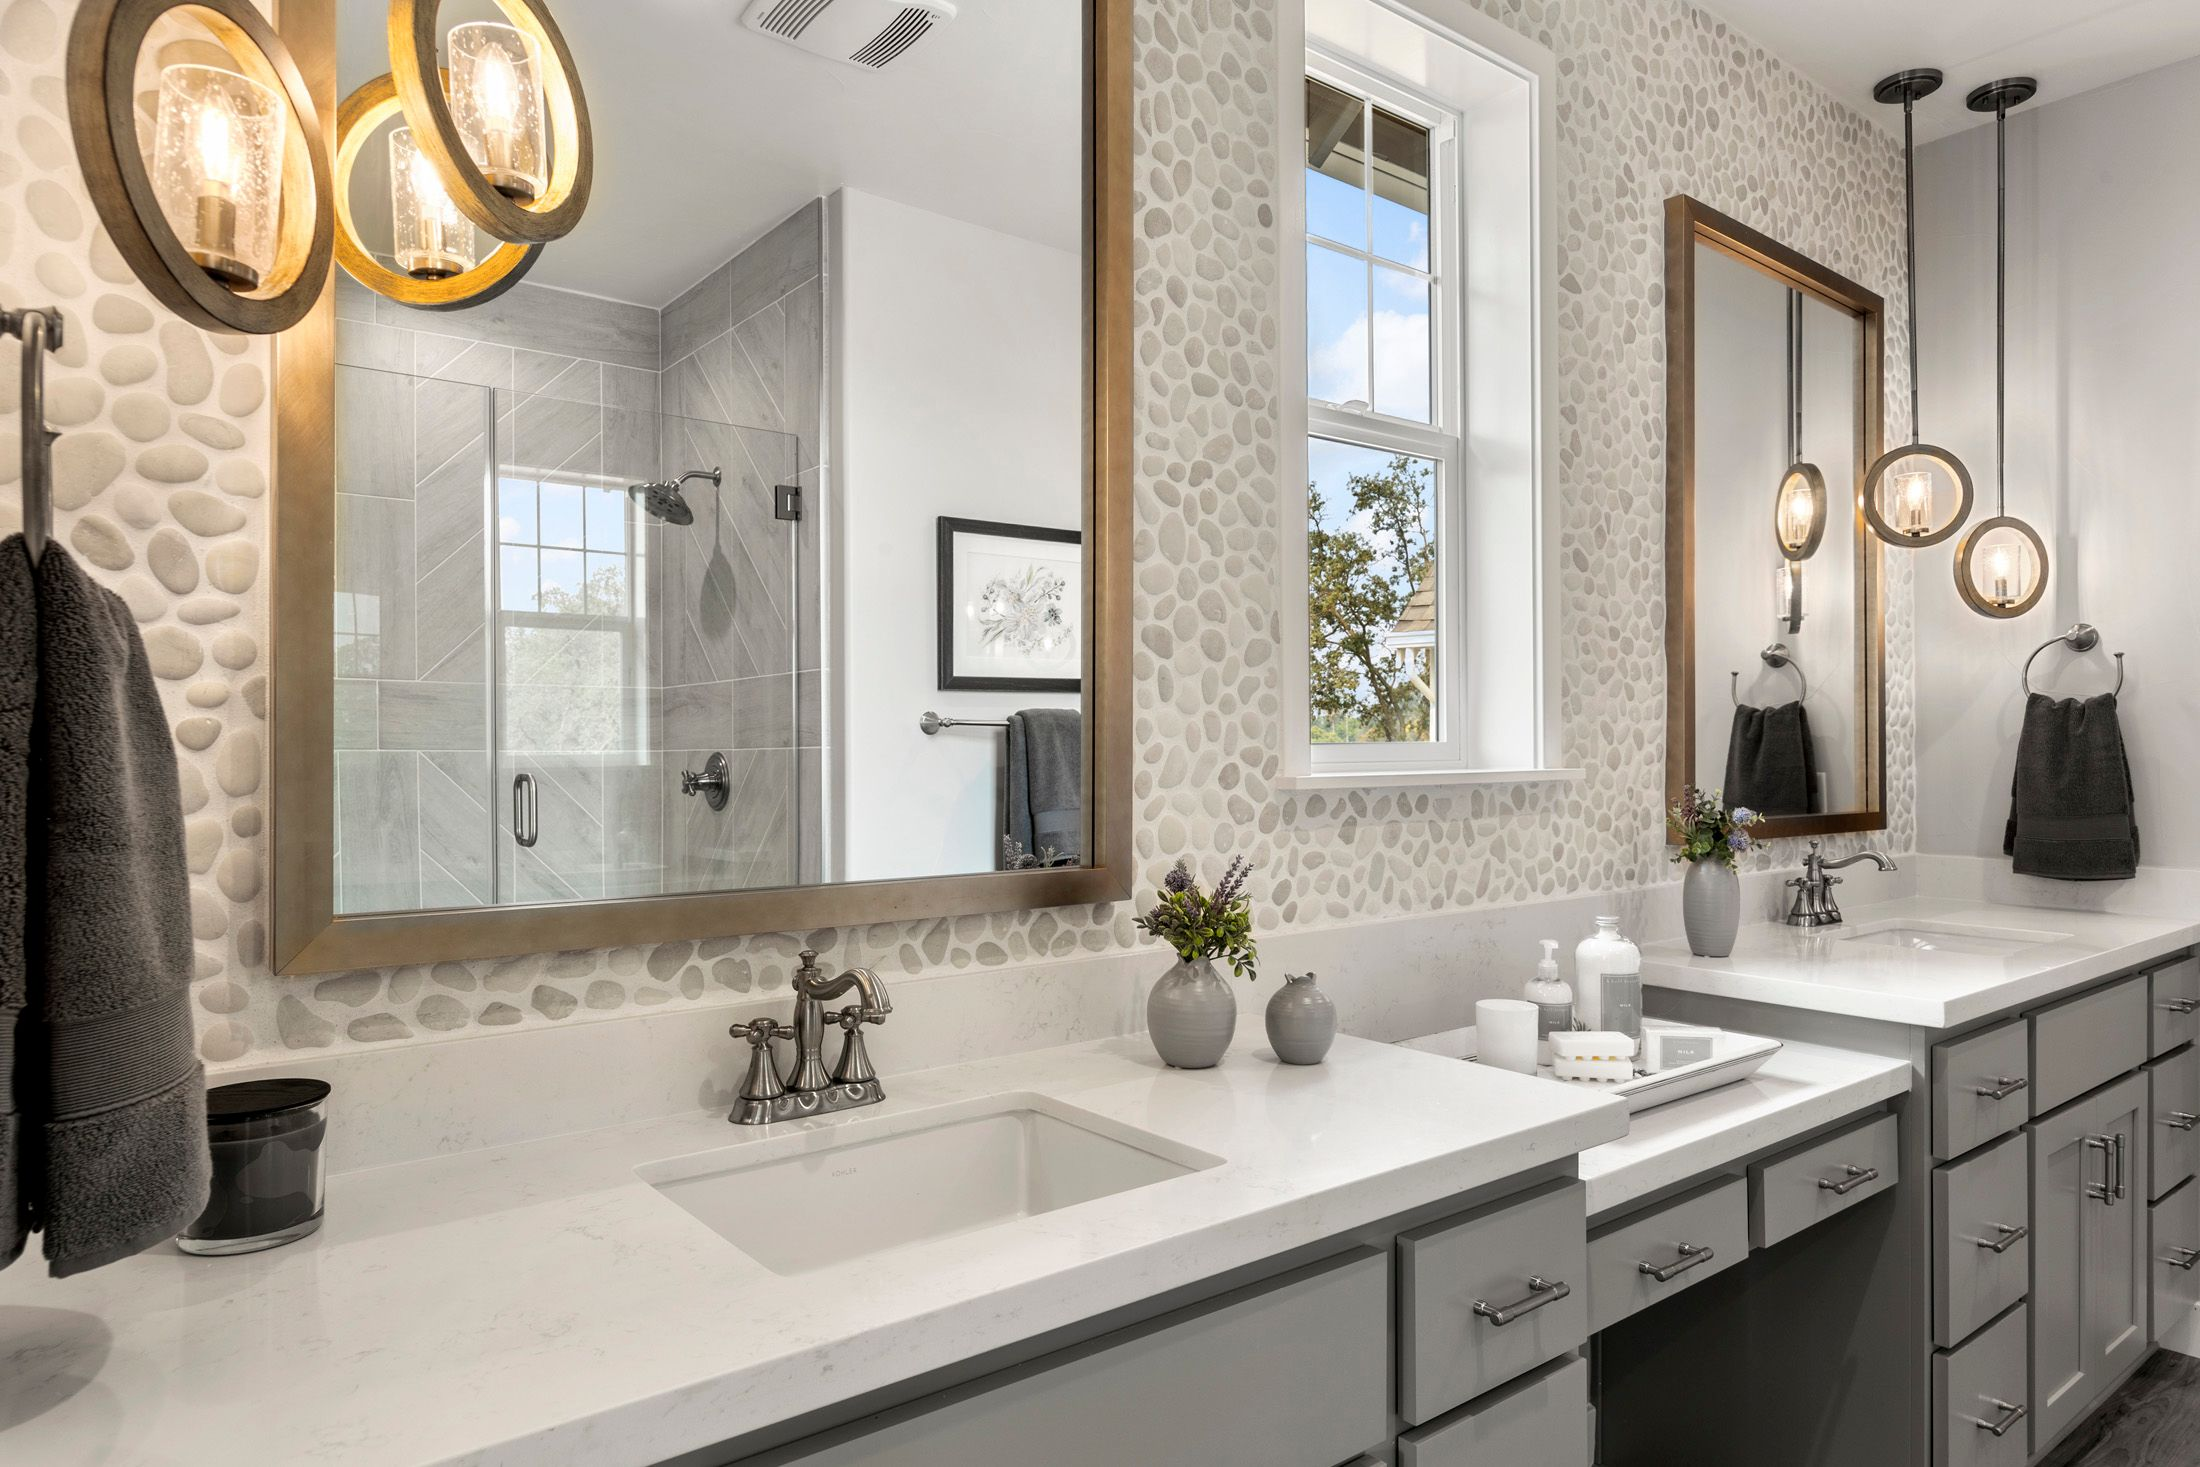 Bathroom featured in the Residence 4 By BlackPine Communites in Sacramento, CA